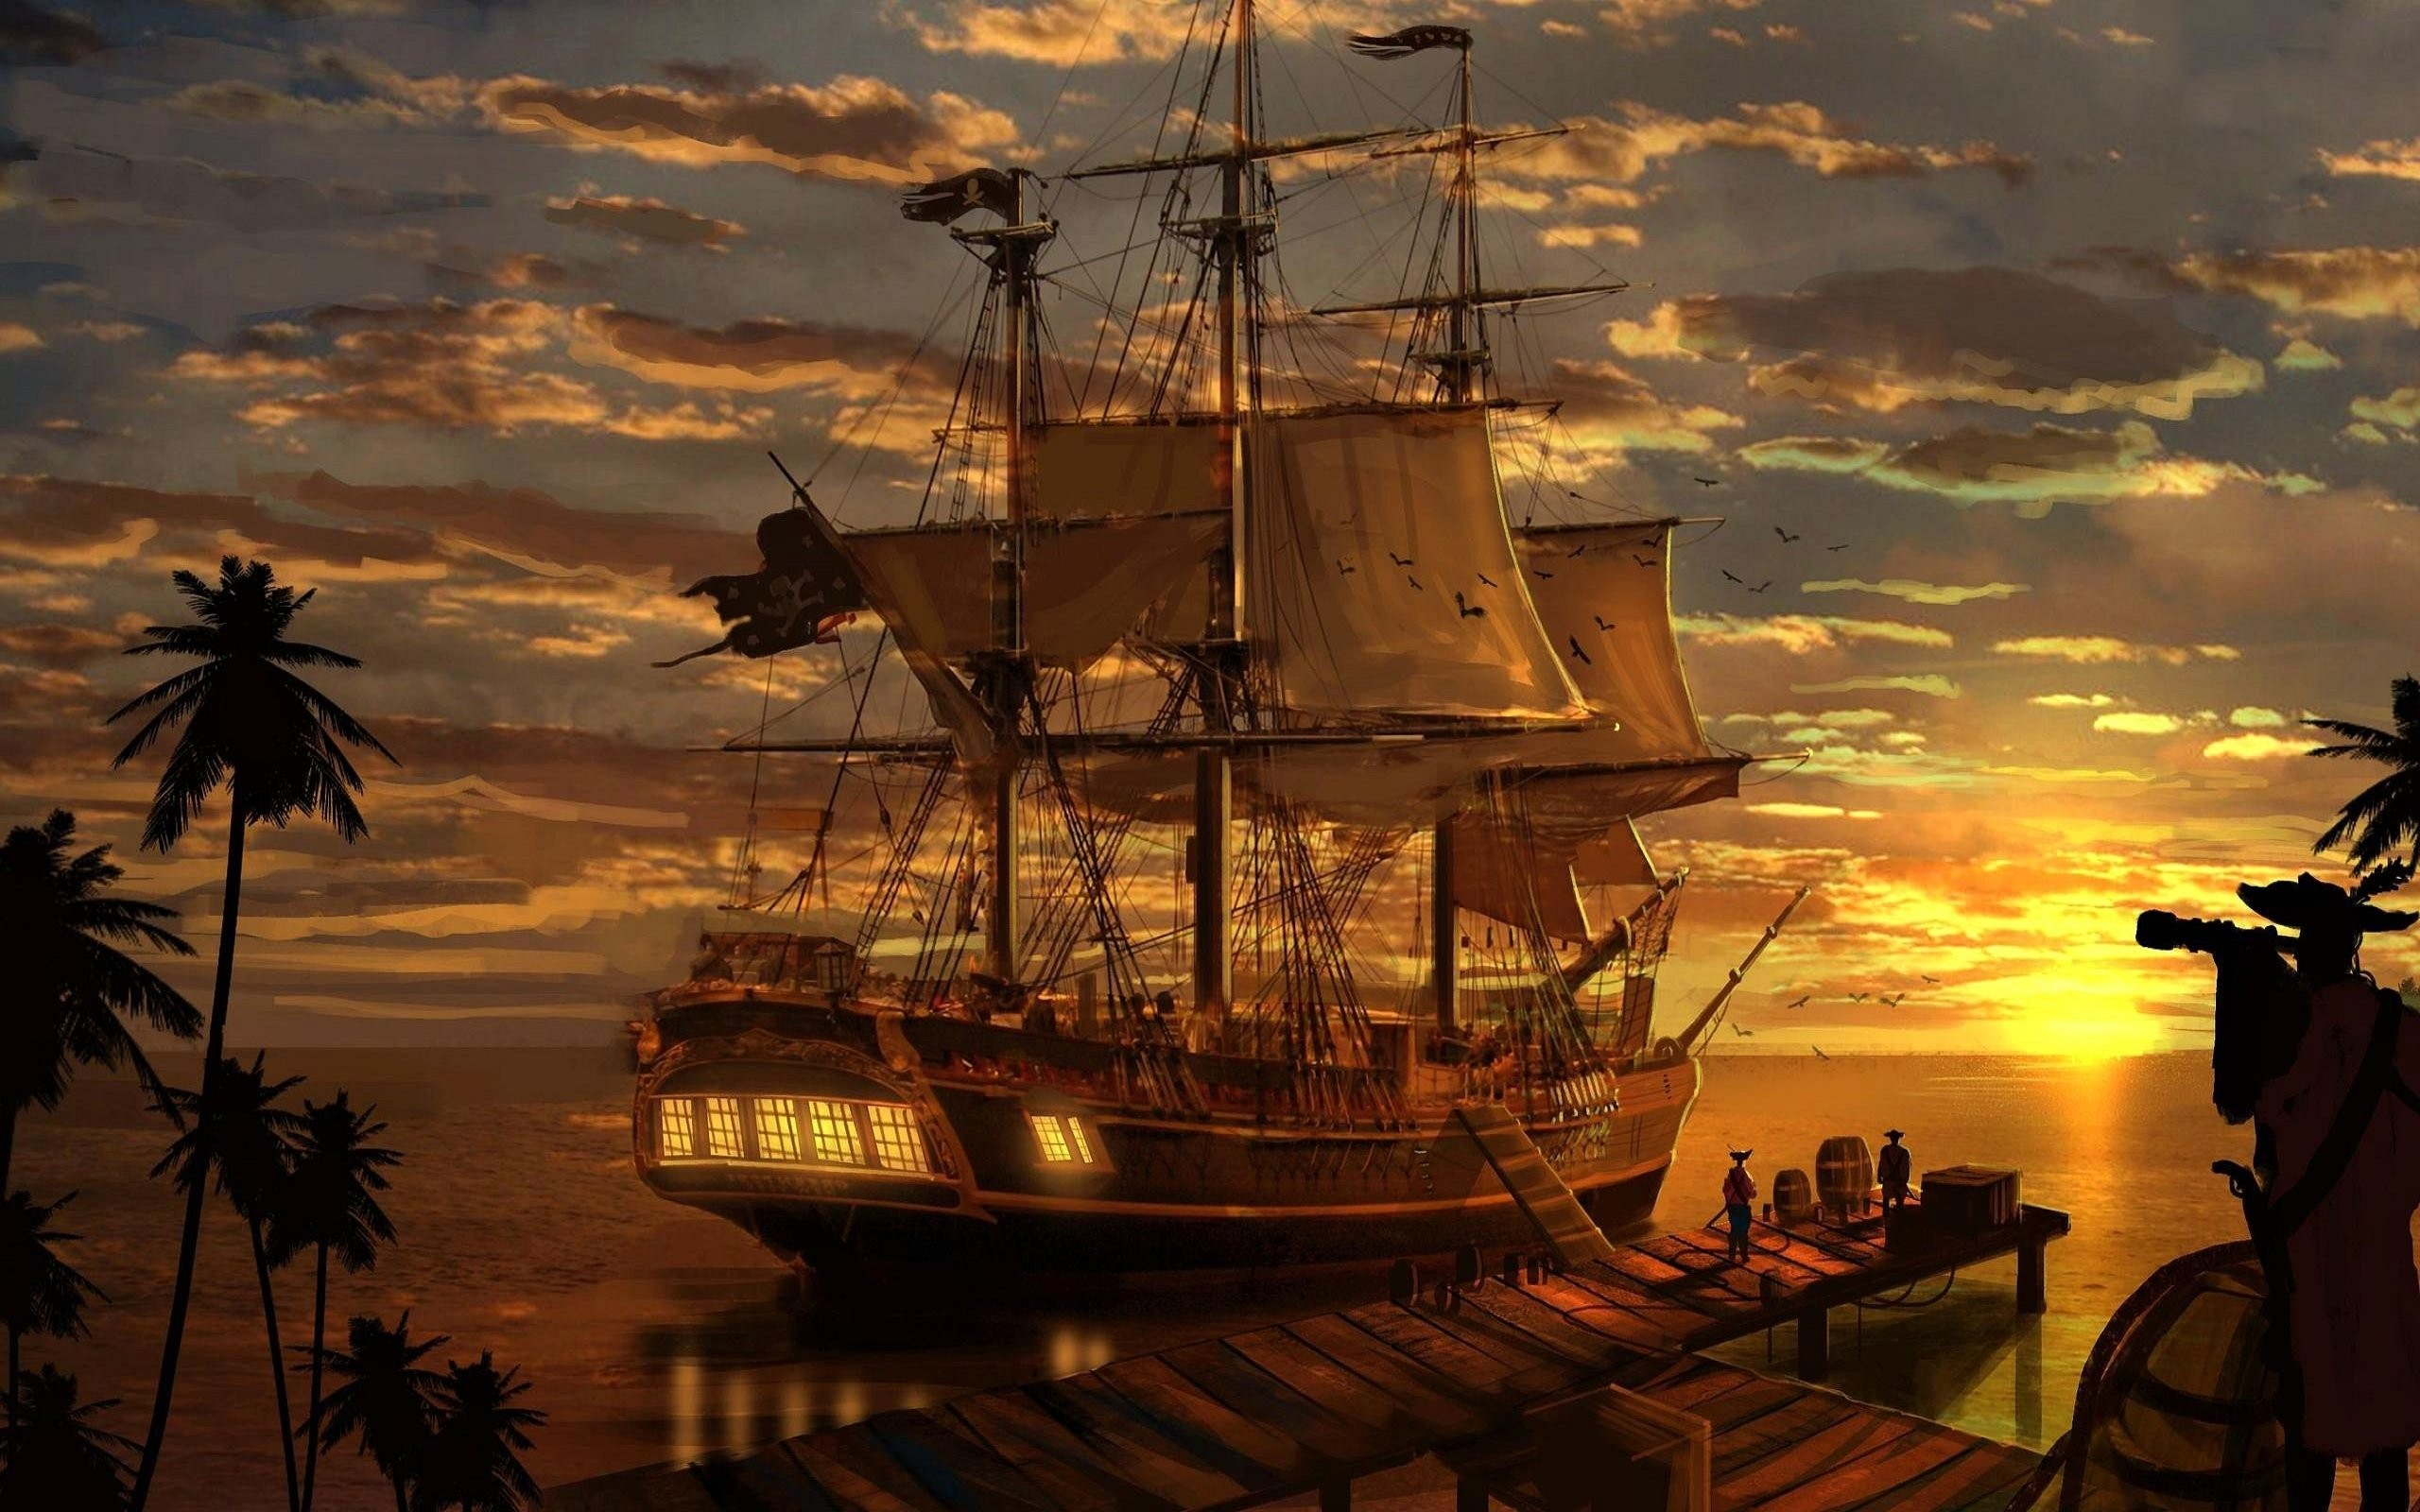 Pirate Wallpaper 166 2560x1600 Pixel Wallpaperpass